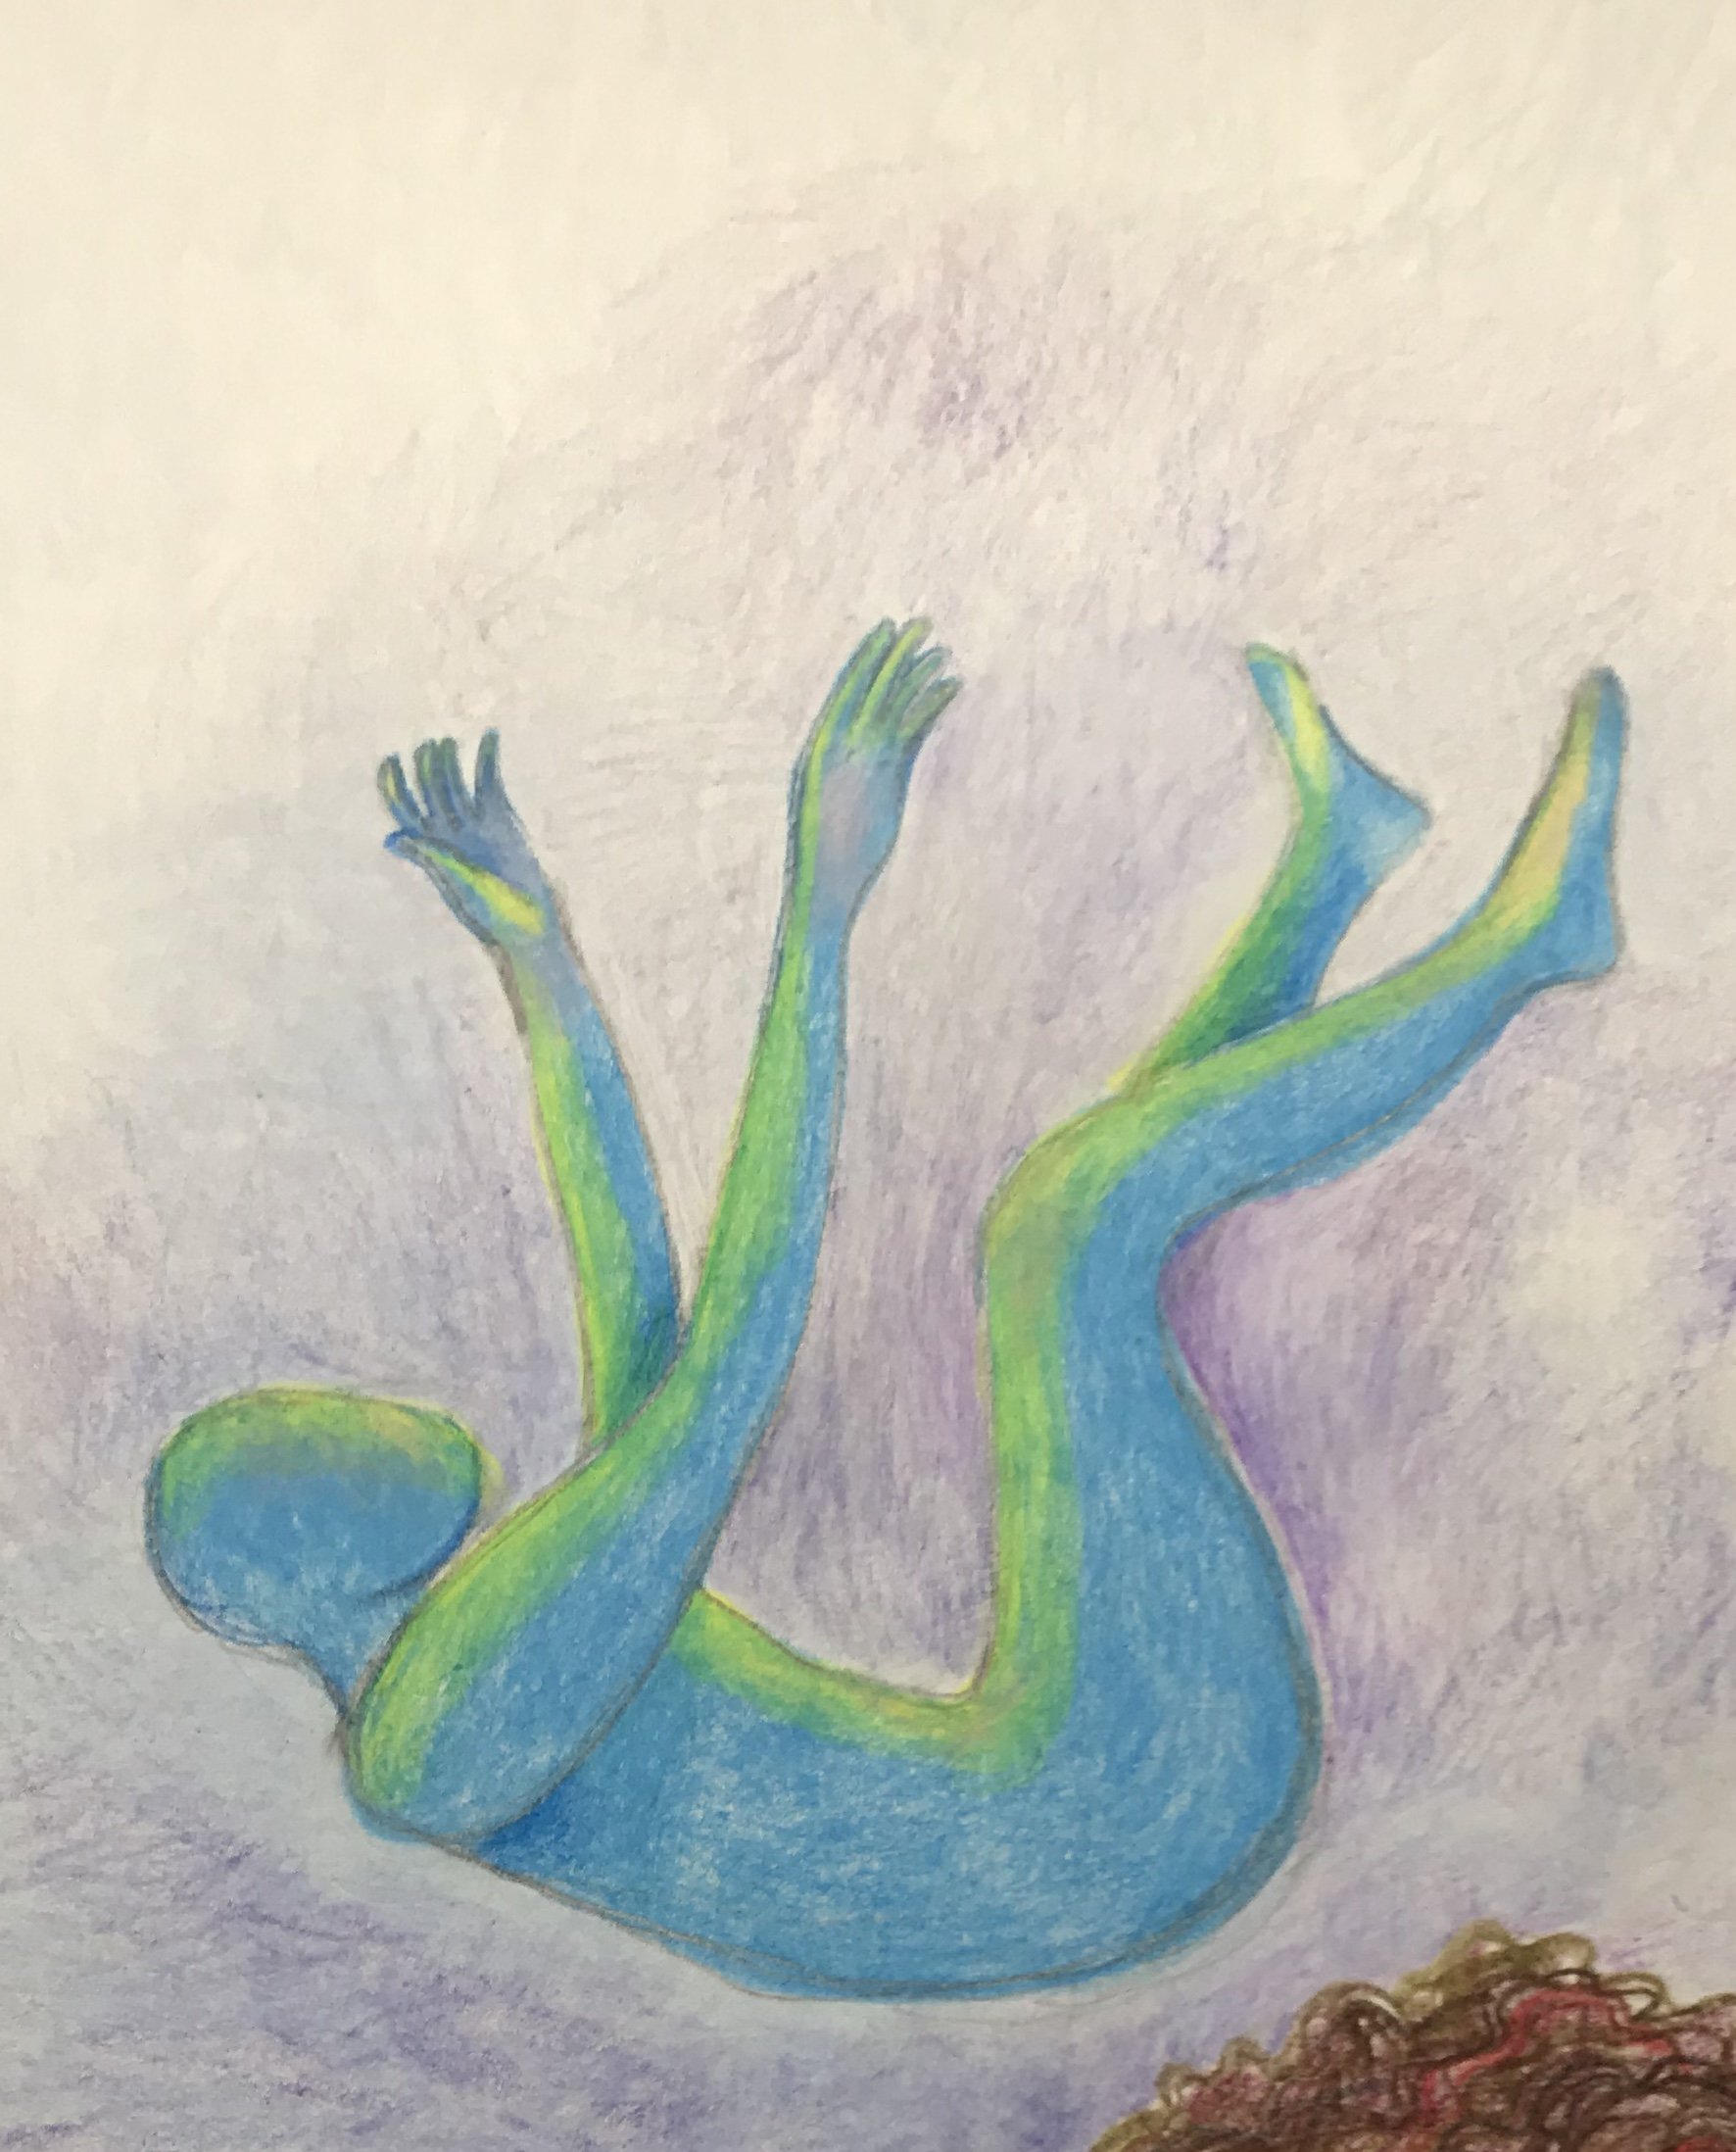 Suddenly Mad- Wish this was a dream (falling figure drawing)